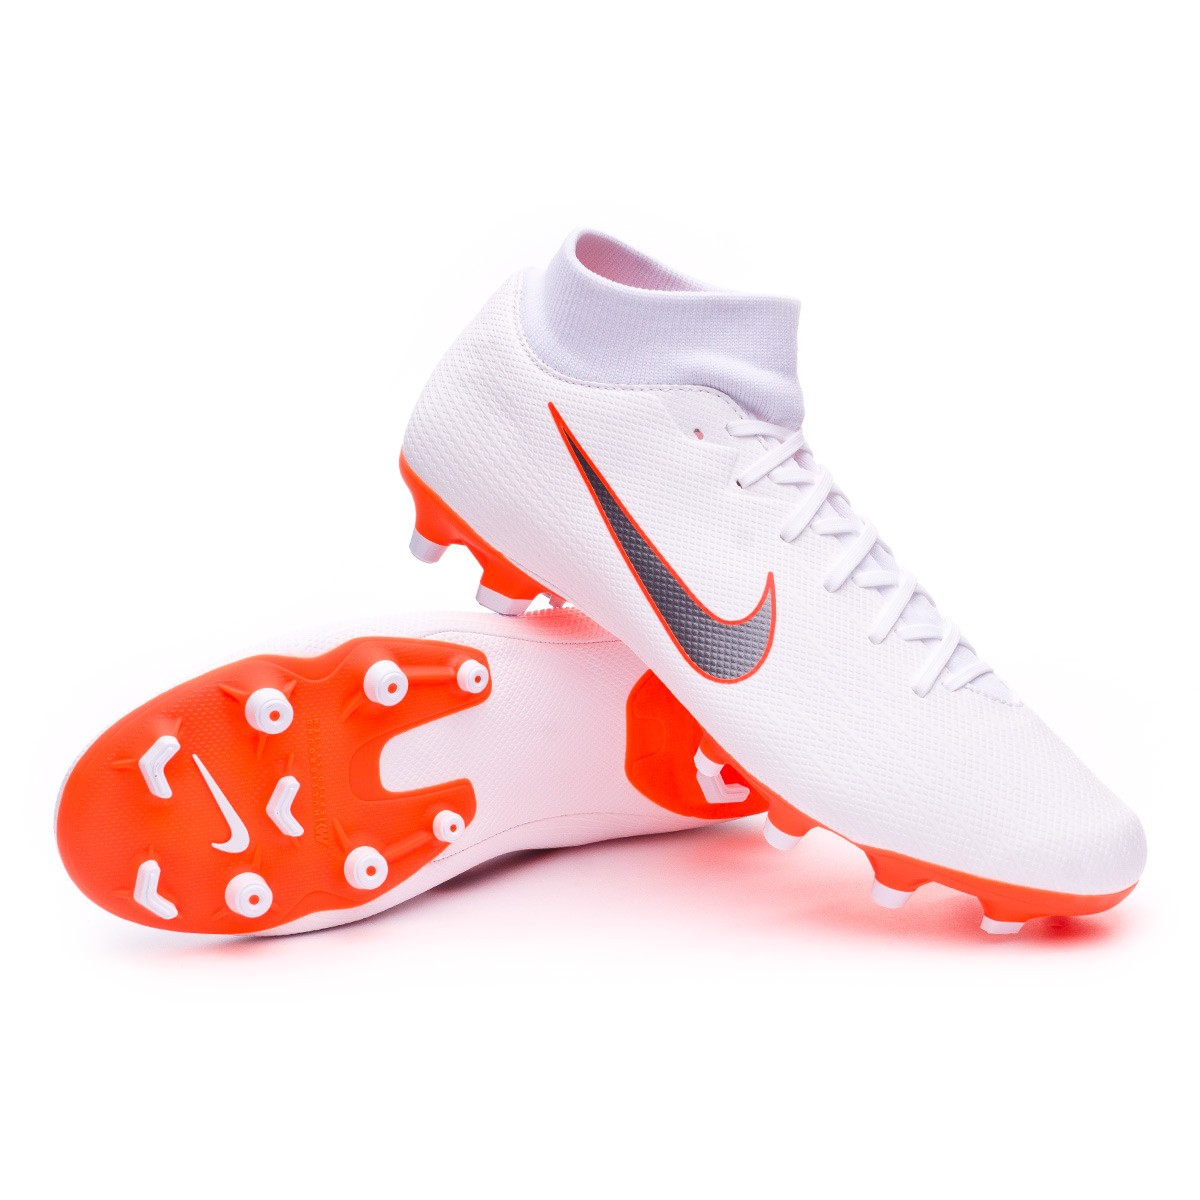 a5adbd2d6 Football Boots Nike Mercurial Superfly VI Academy MG White-Metallic ...